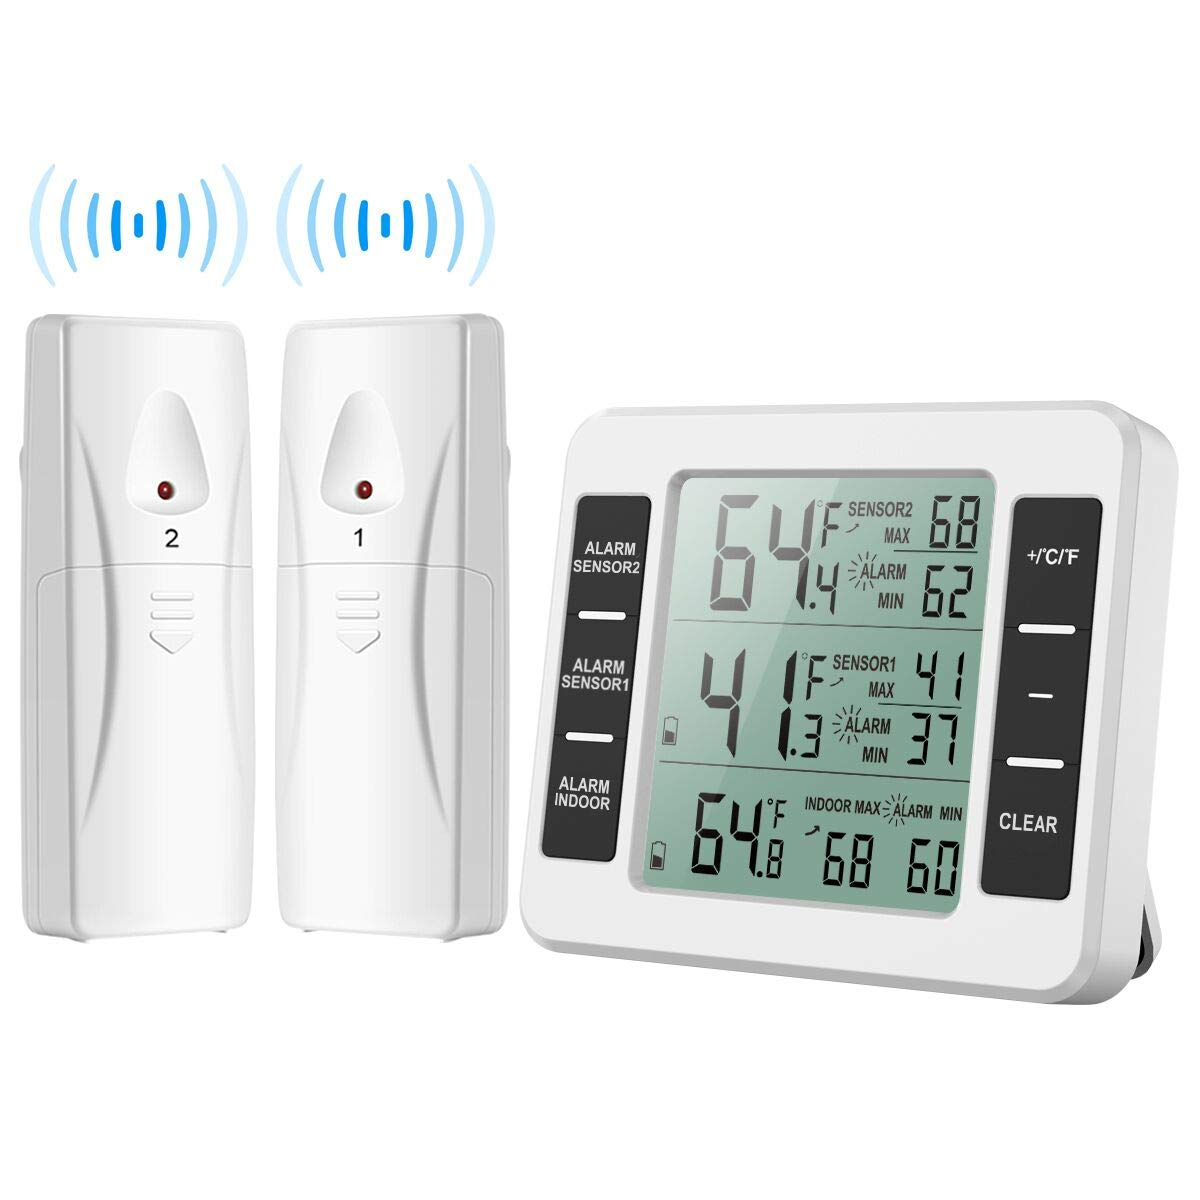 (New Version) AMIR Refrigerator Thermometer, Wireless Indoor Outdoor Thermometer, Sensor Temperature Monitor with Audible Alarm Temperature Gauge for Freezer Kitchen Home (Battery not Included) by AMIR